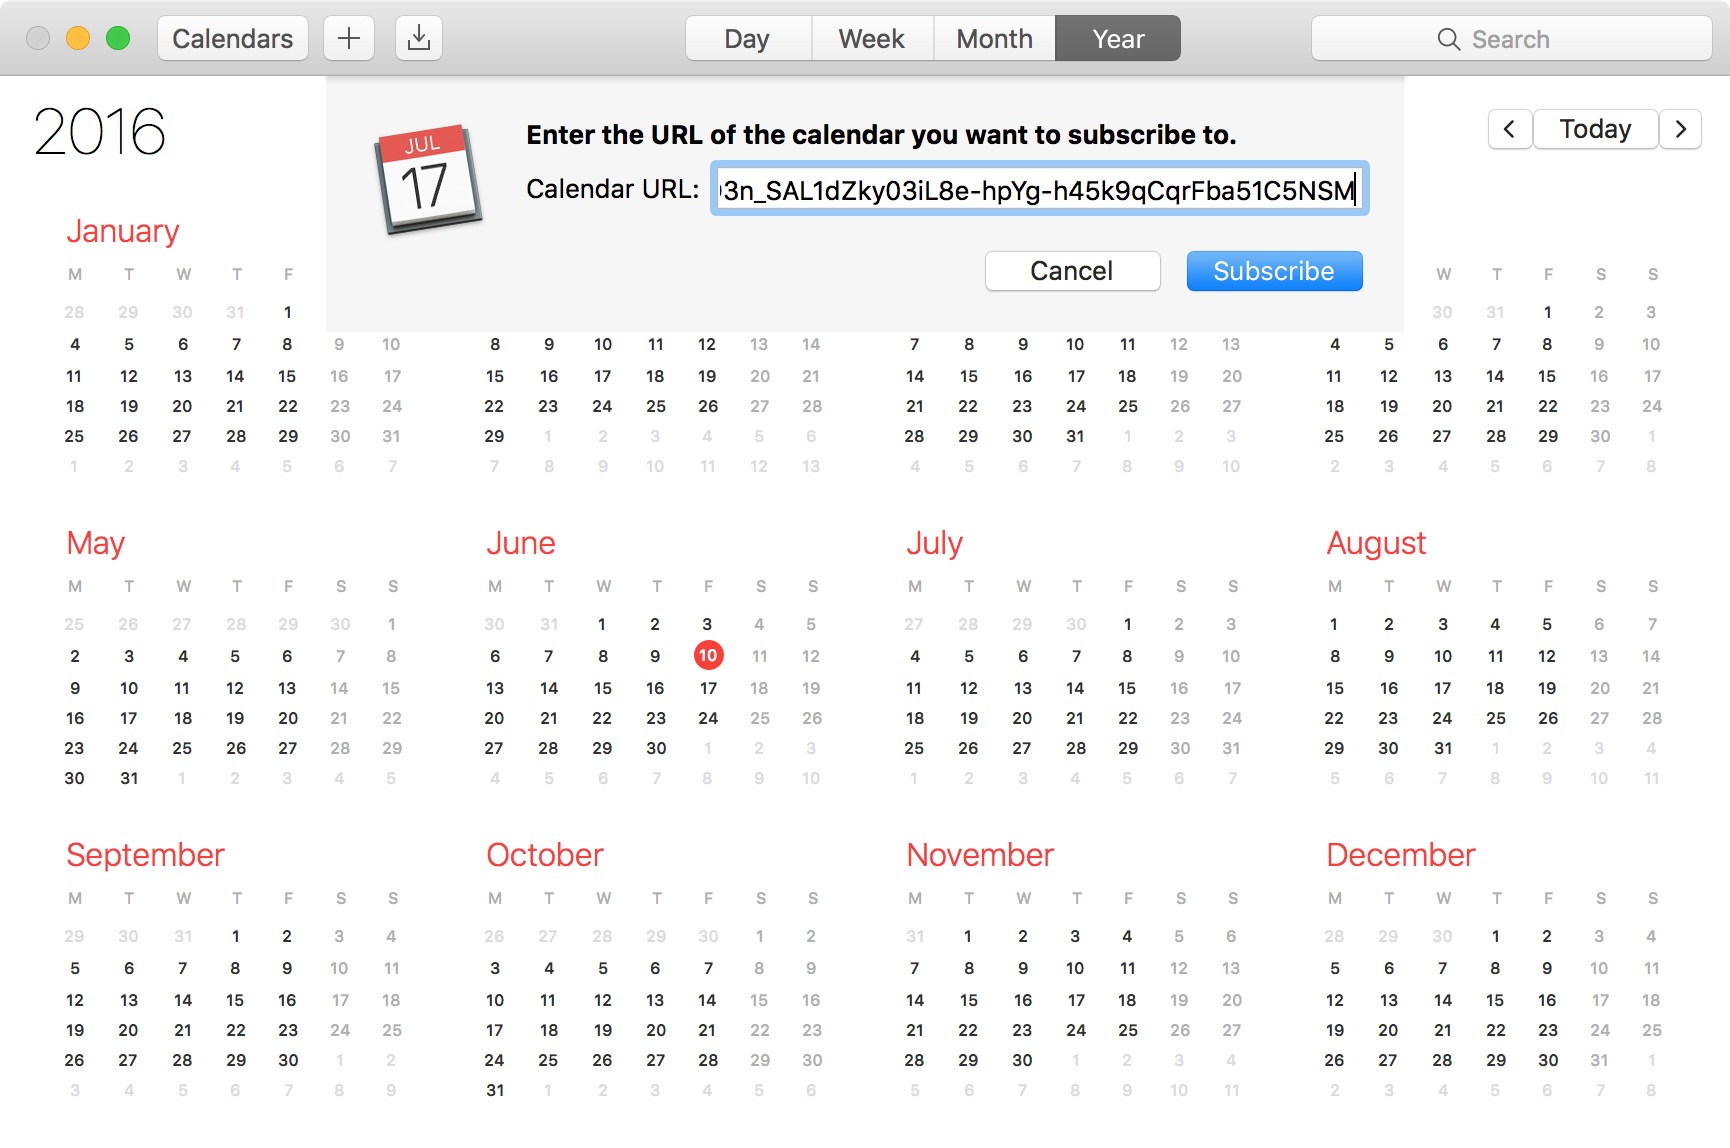 How to have iCloud sync your calendar subscriptions across